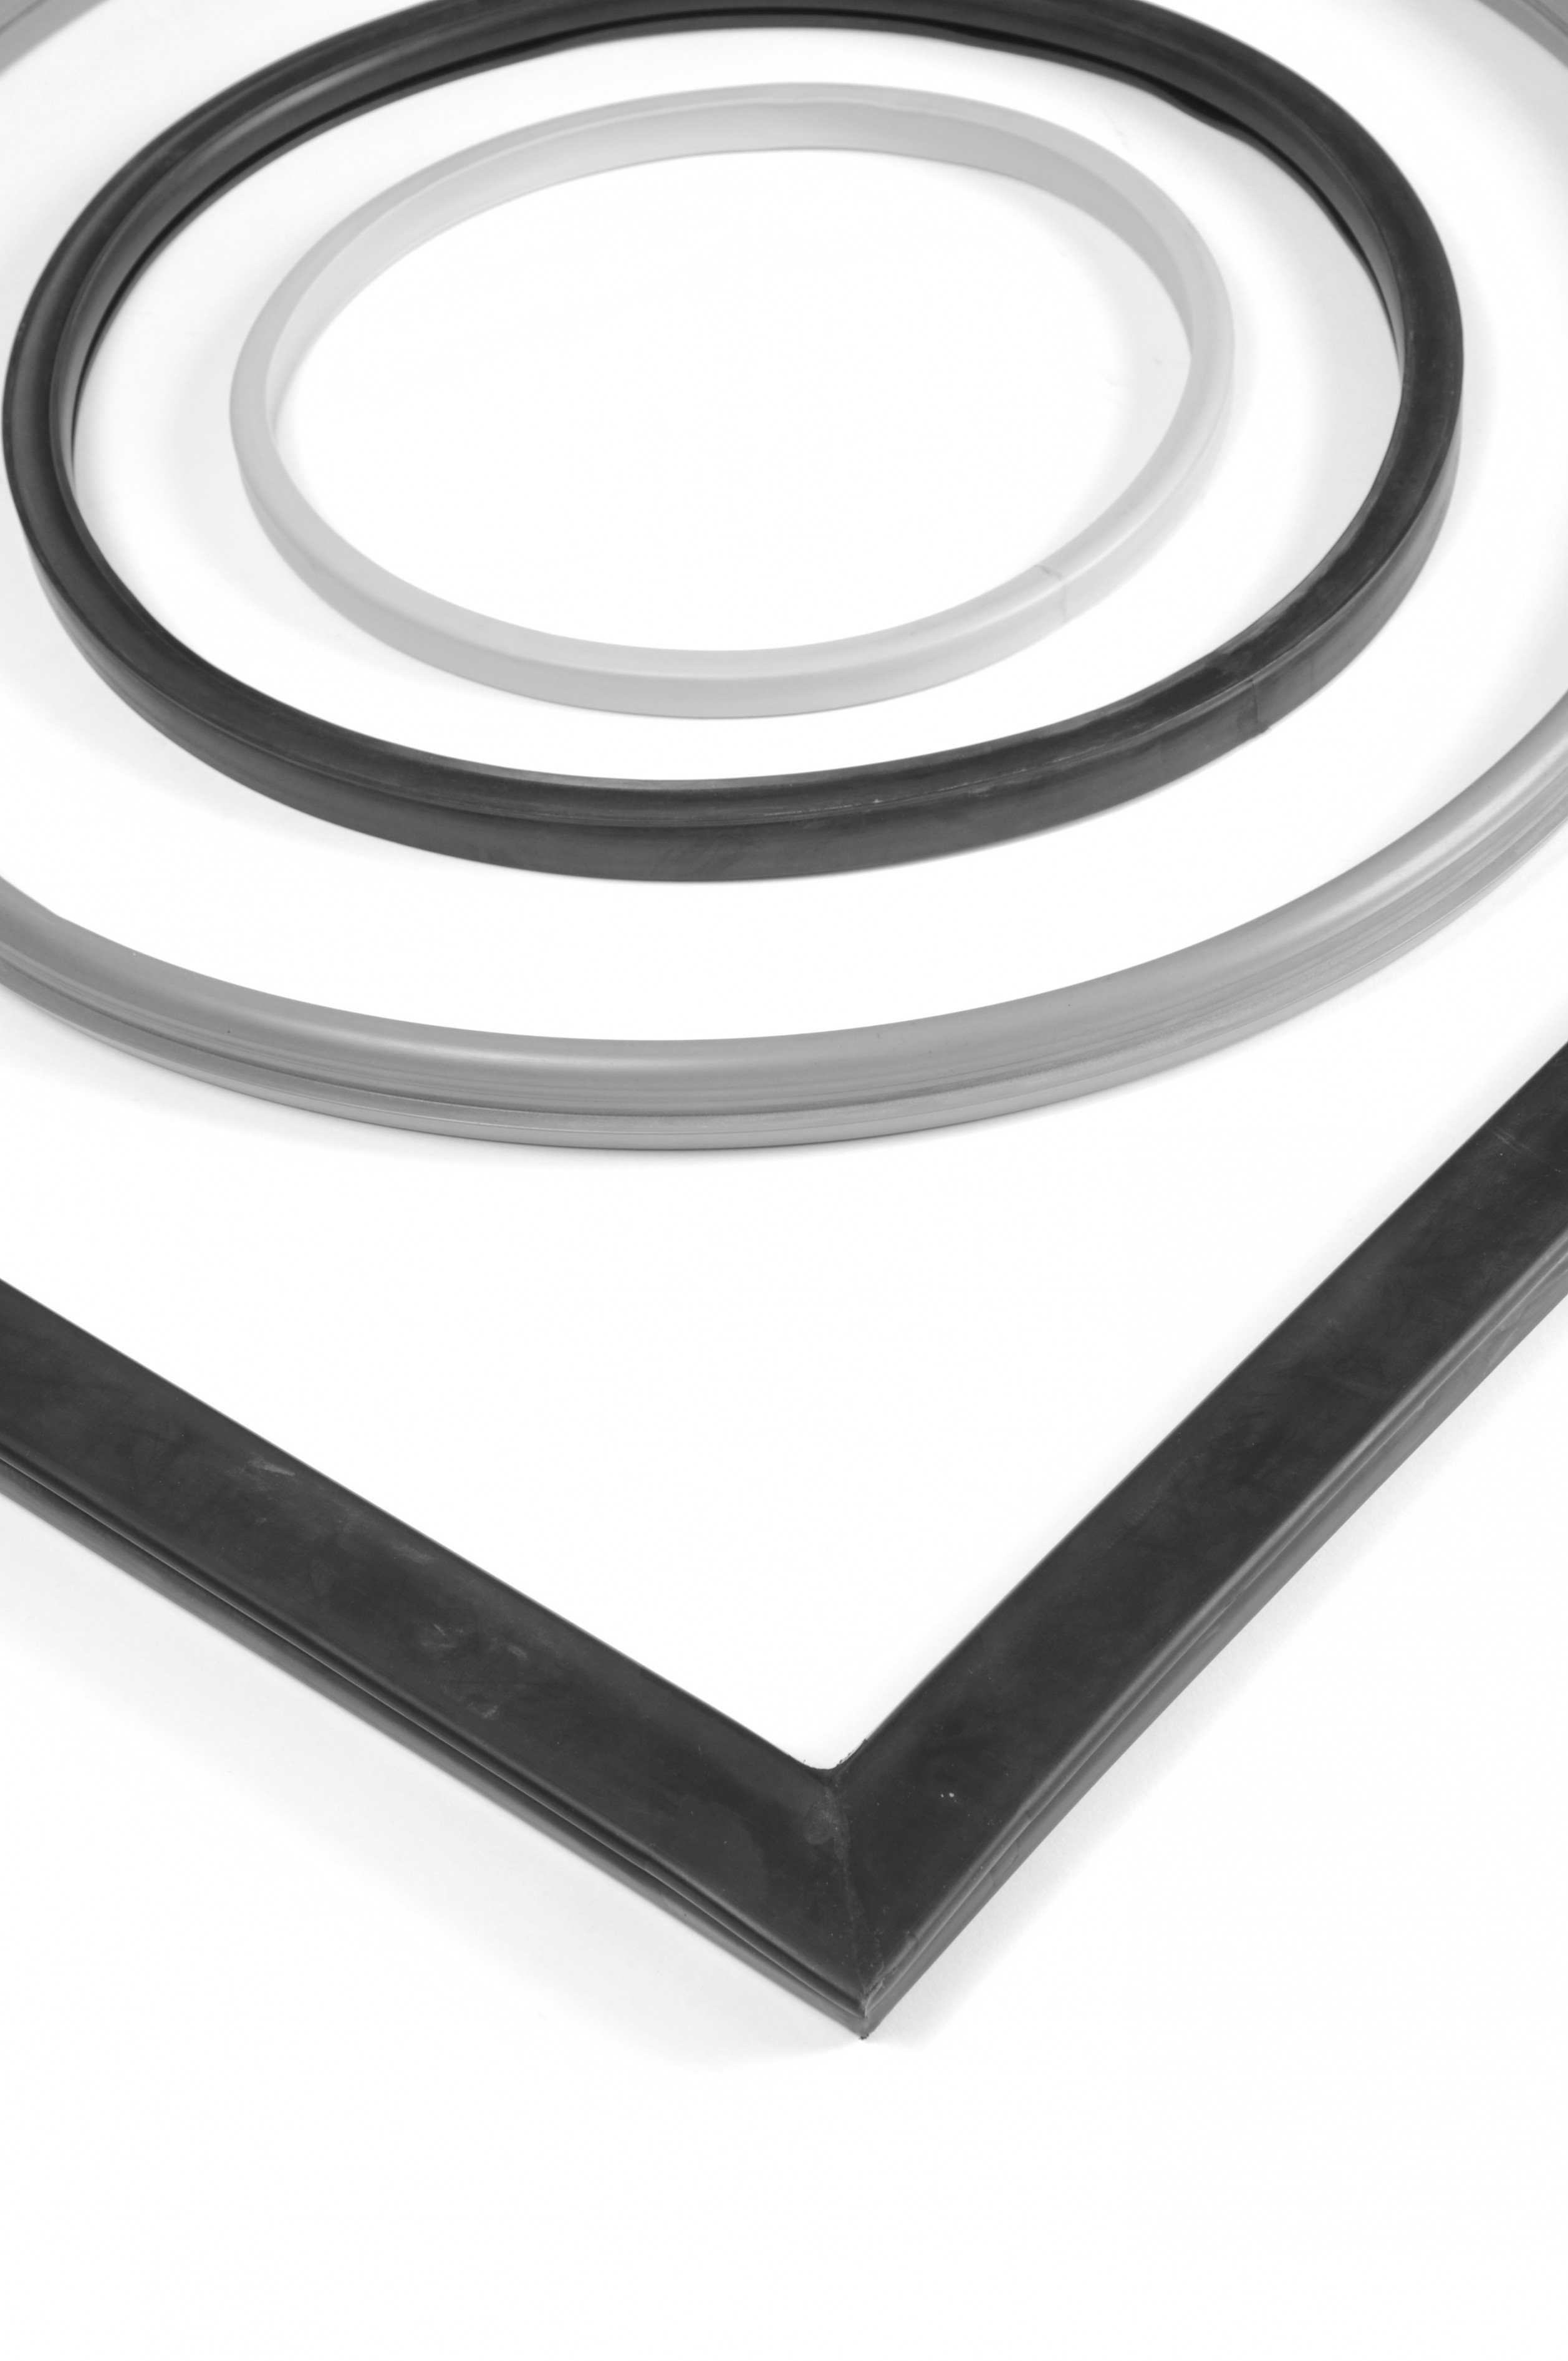 Loops of Extruded and Spliced Rubber